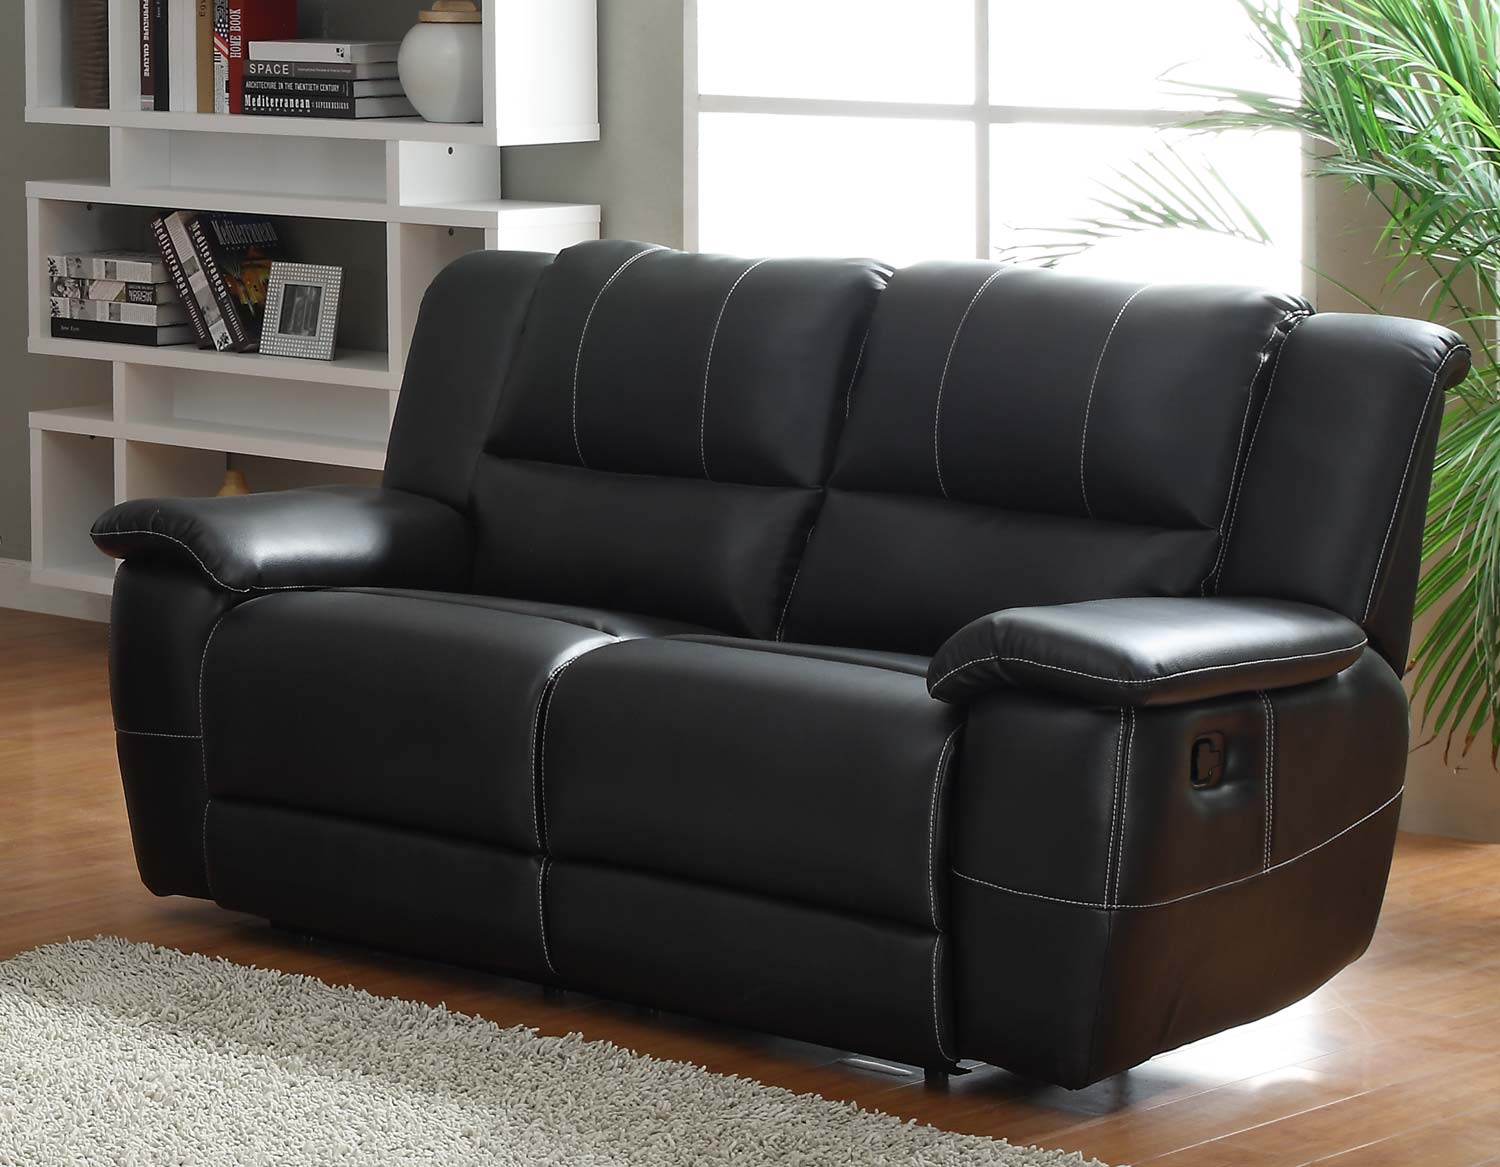 Delightful Homelegance Cantrell Love Seat Double Recliner   Black   Bonded Leather  Match